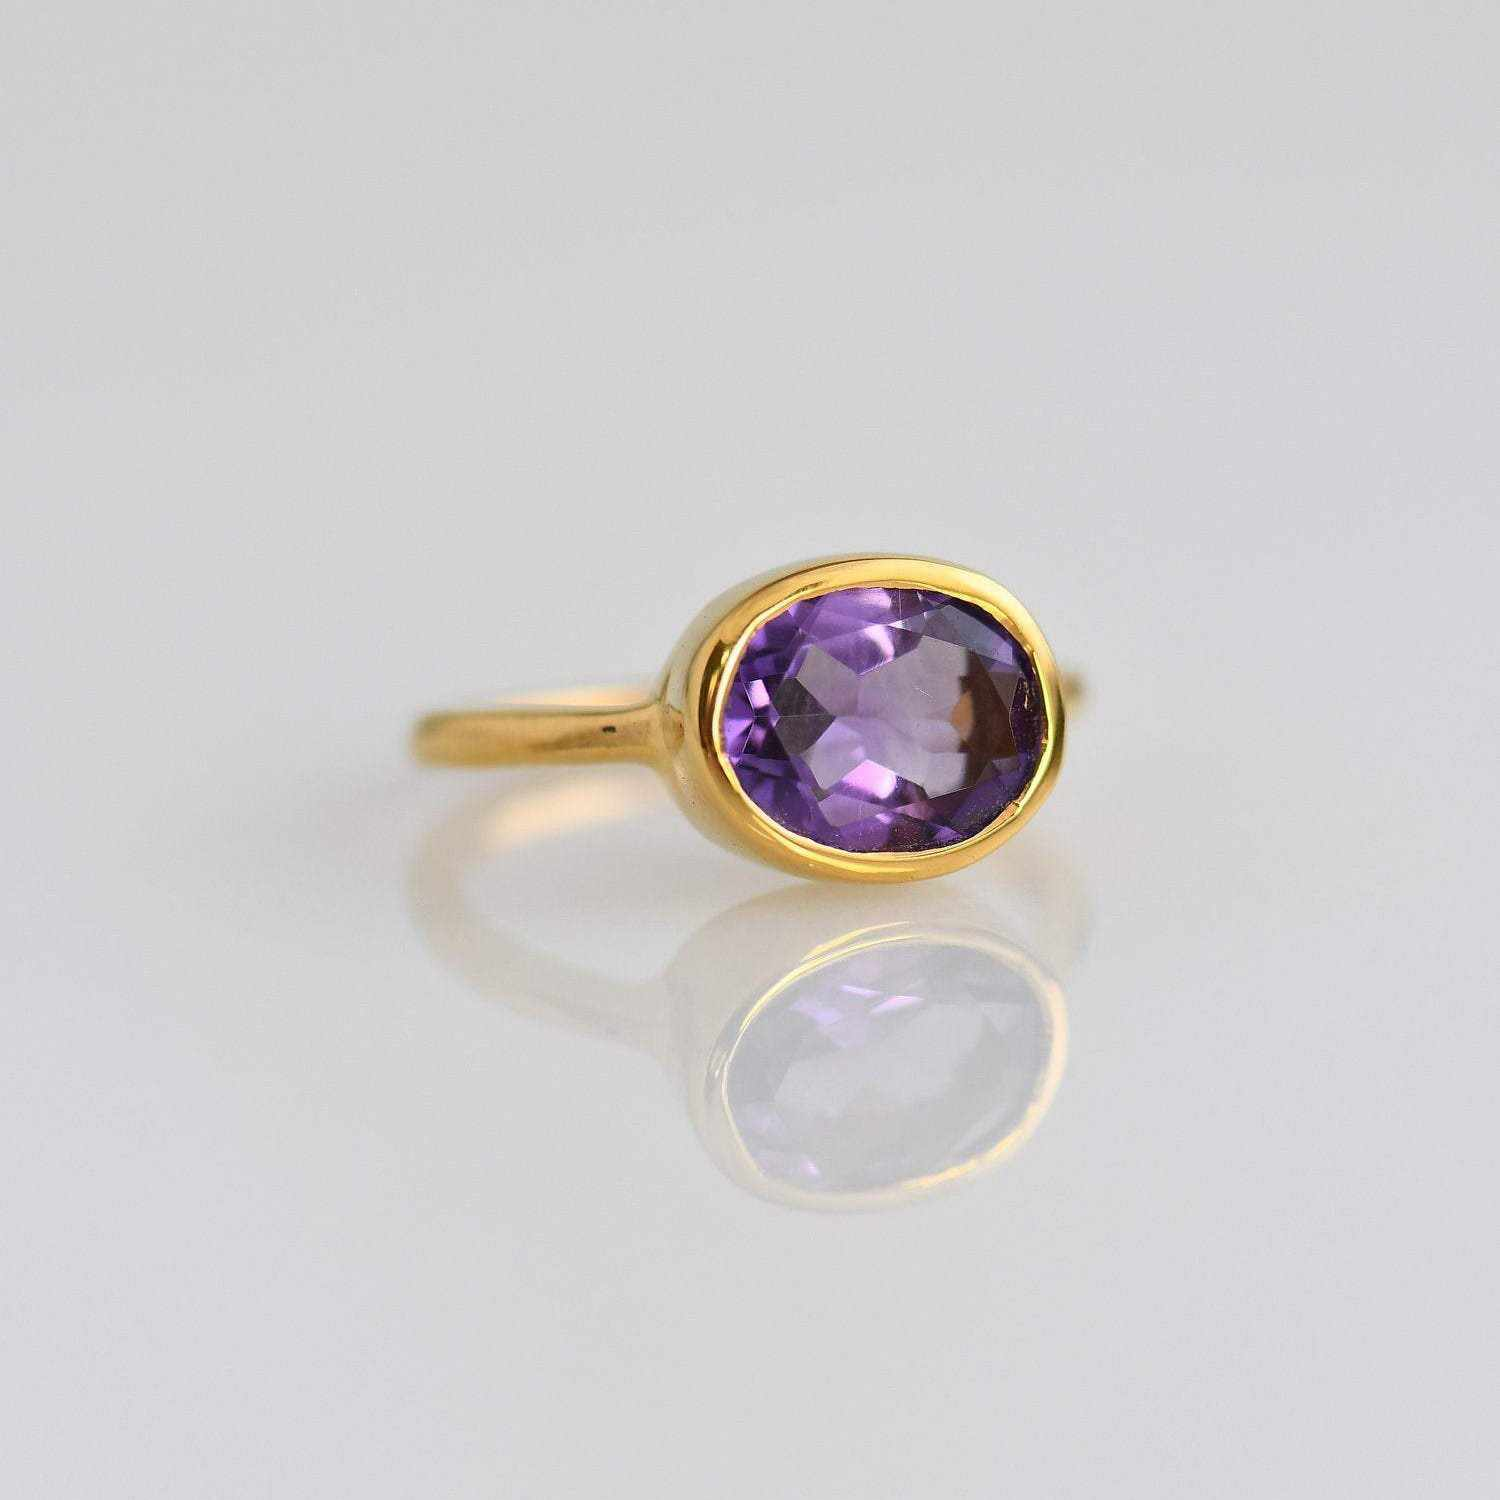 Amethyst Ring - Oval Ring